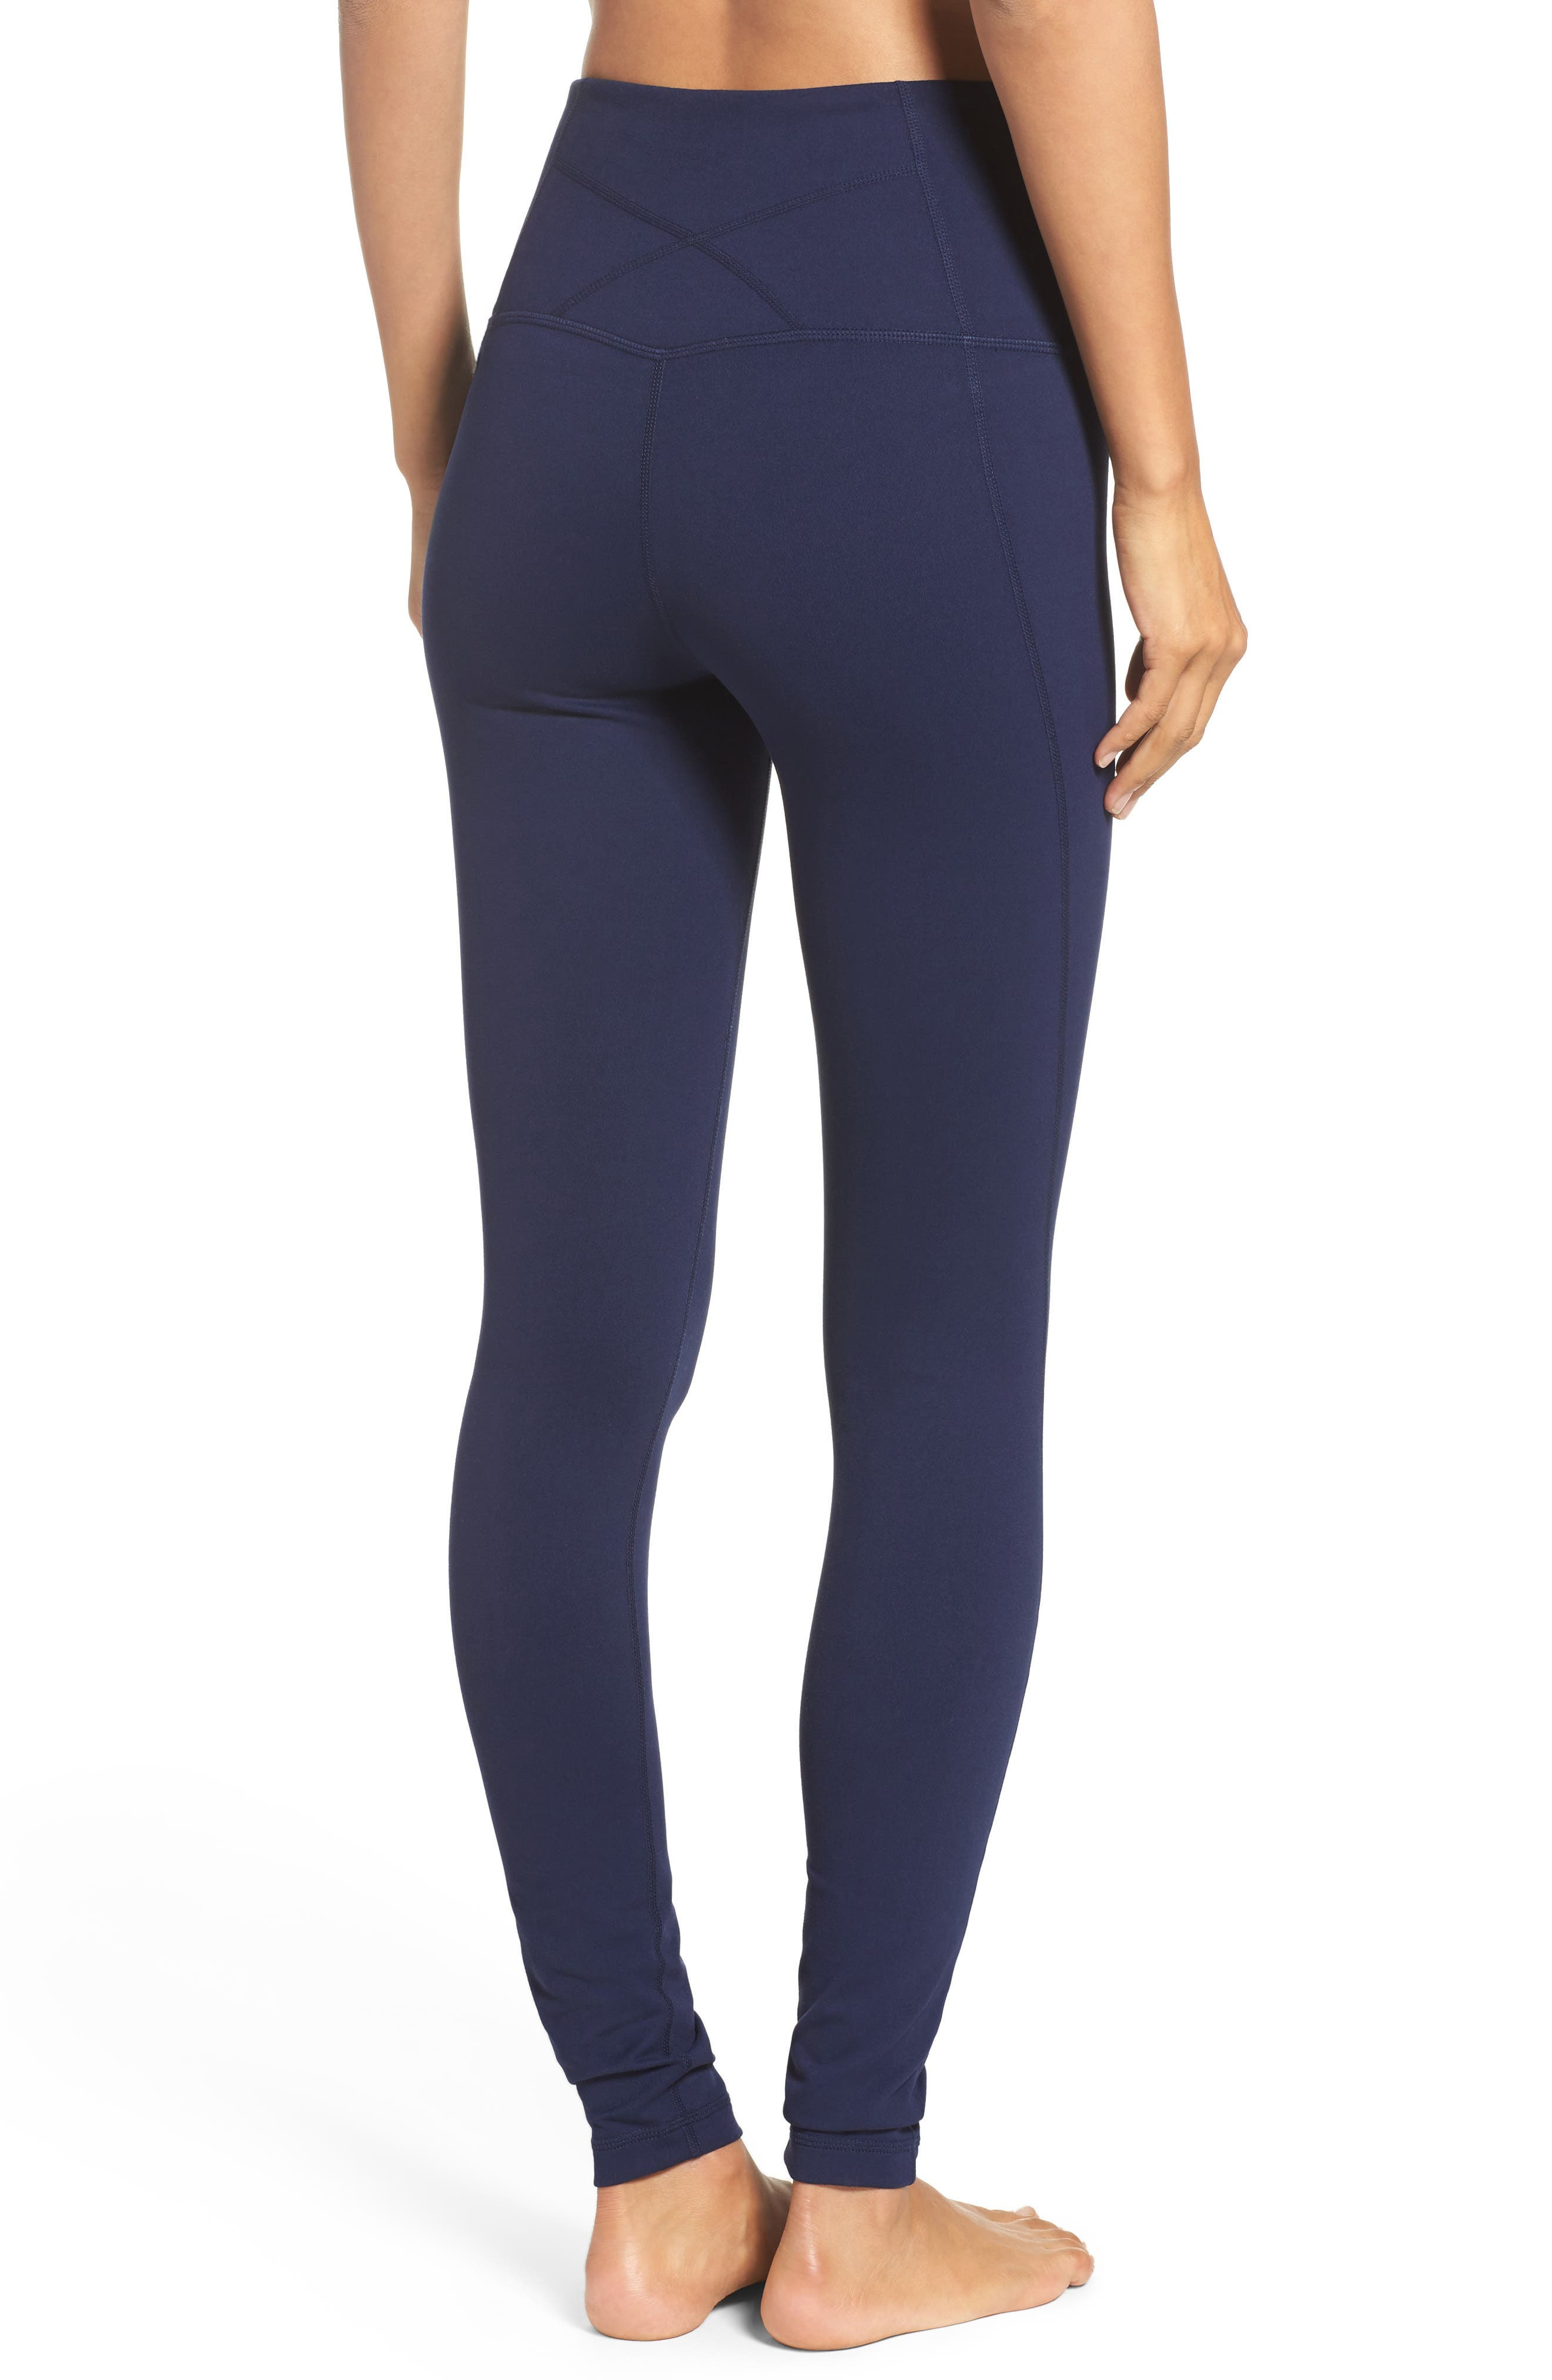 Live In High Waist Leggings,                             Alternate thumbnail 2, color,                             Navy Maritime